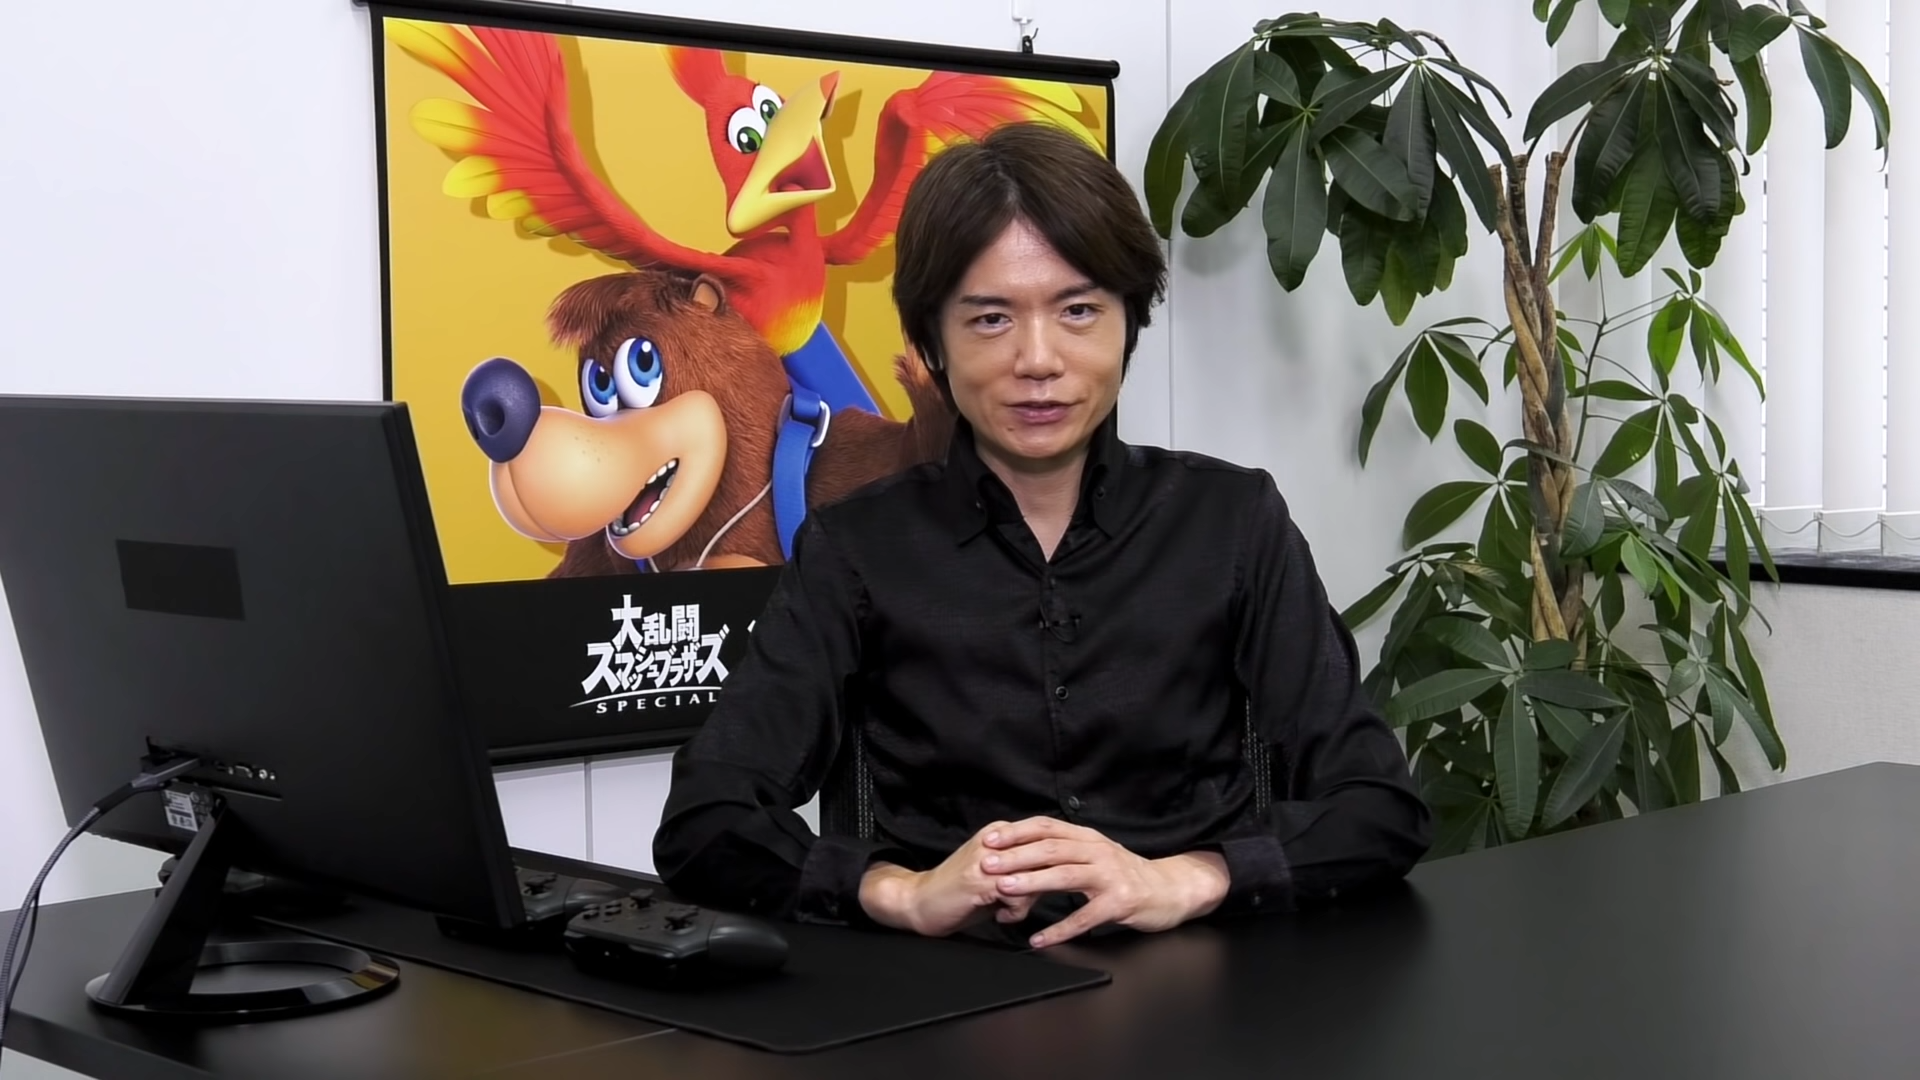 Sakurai discusses announcement of additional fighters, his 7-8 year long developmental work on Smash, and more